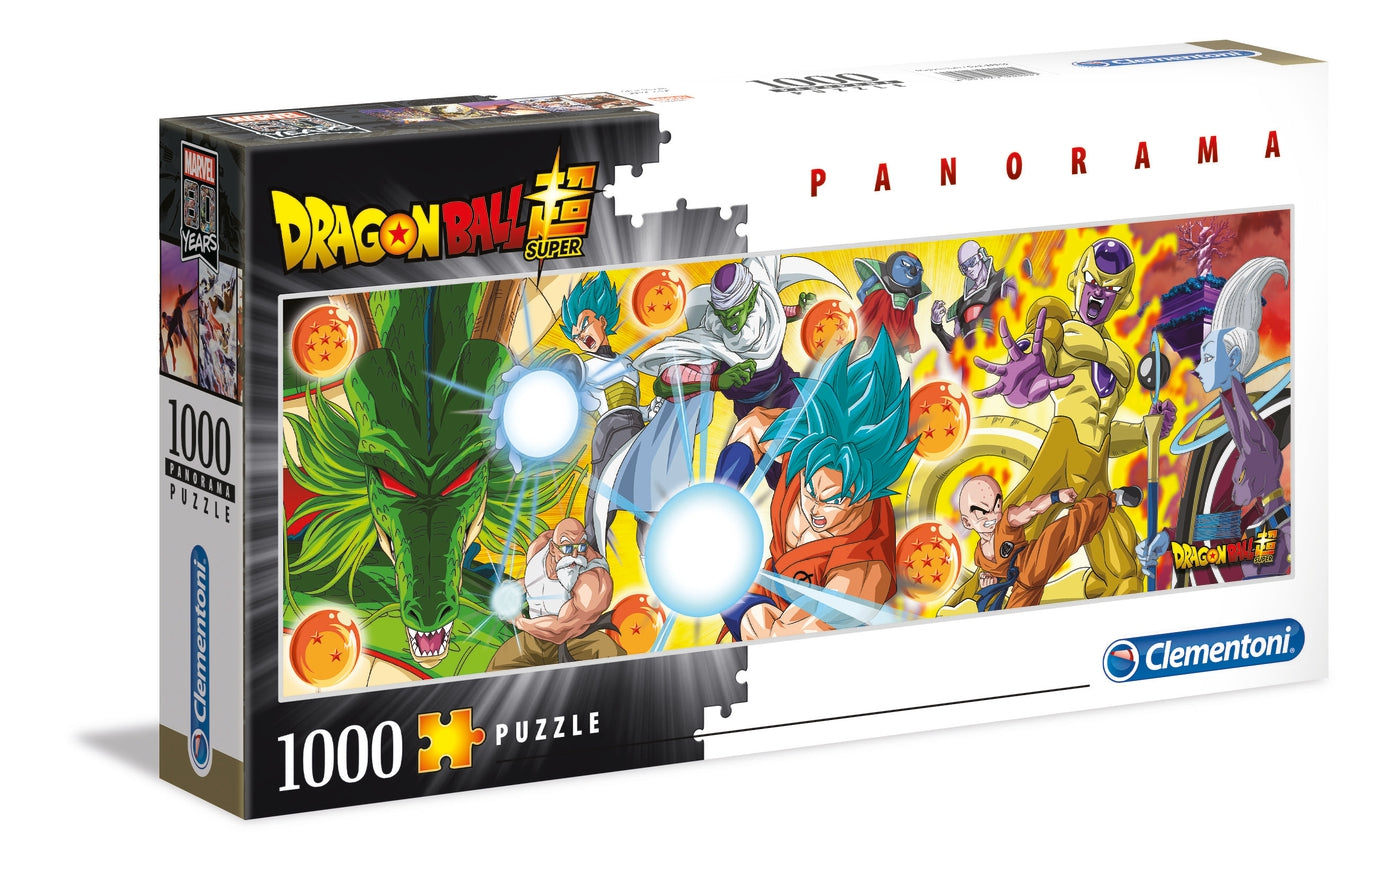 Dragon Ball - 1000 pcs - Panorama High Quality Collection